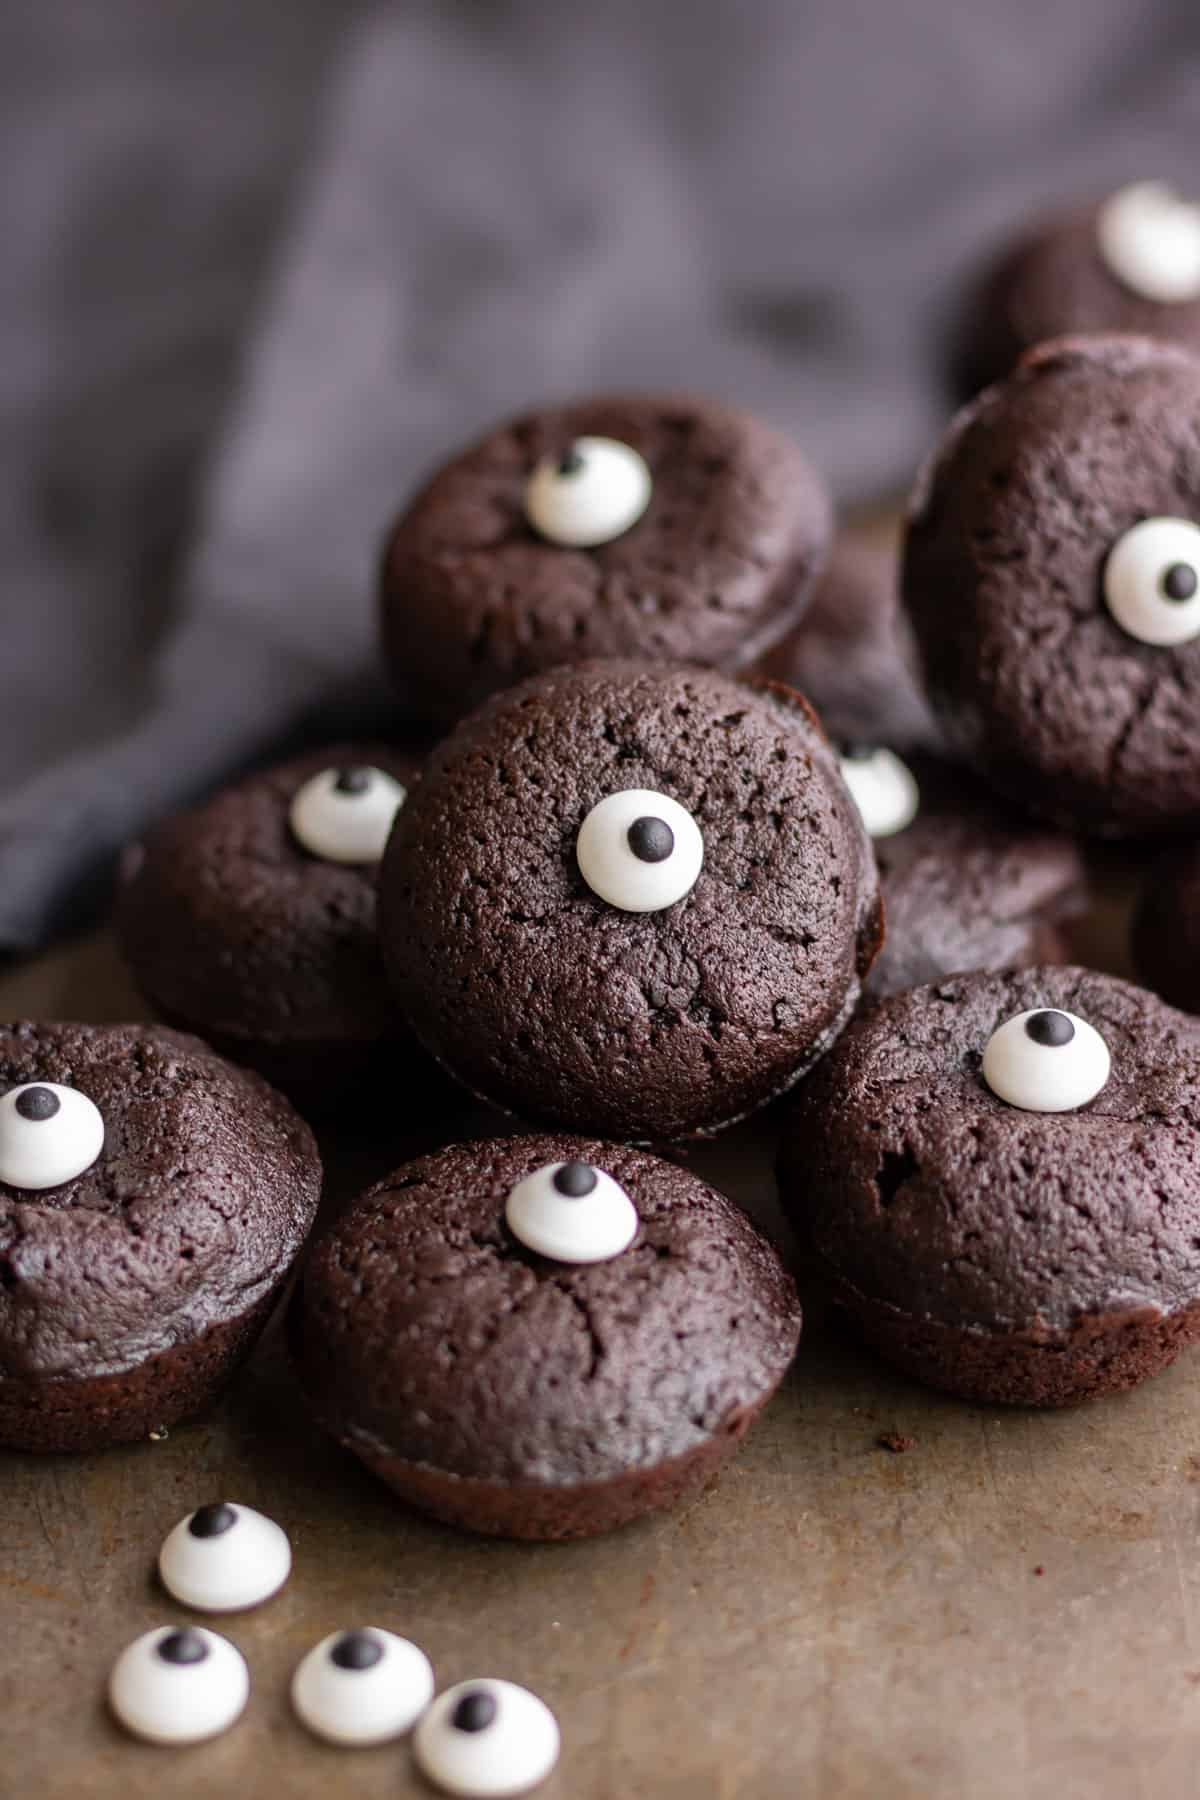 A pile of halloween brownies with candy eyes.